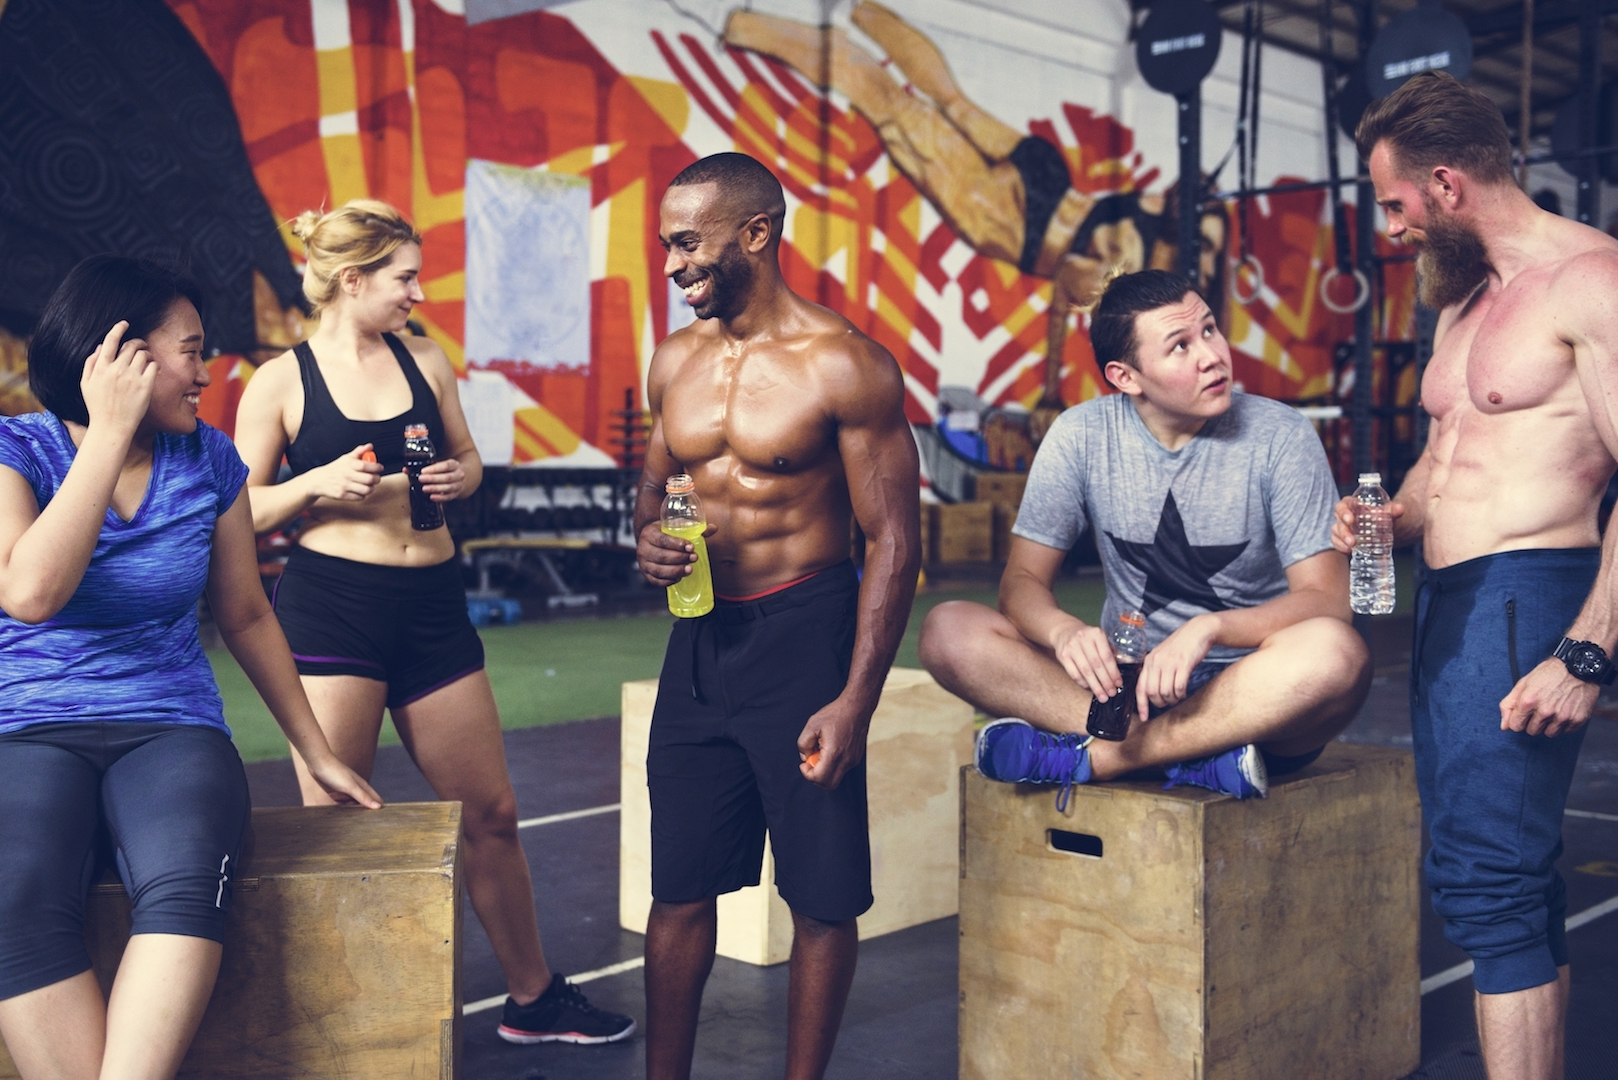 What is the best fitness advice you would give to CrossFit beginners?